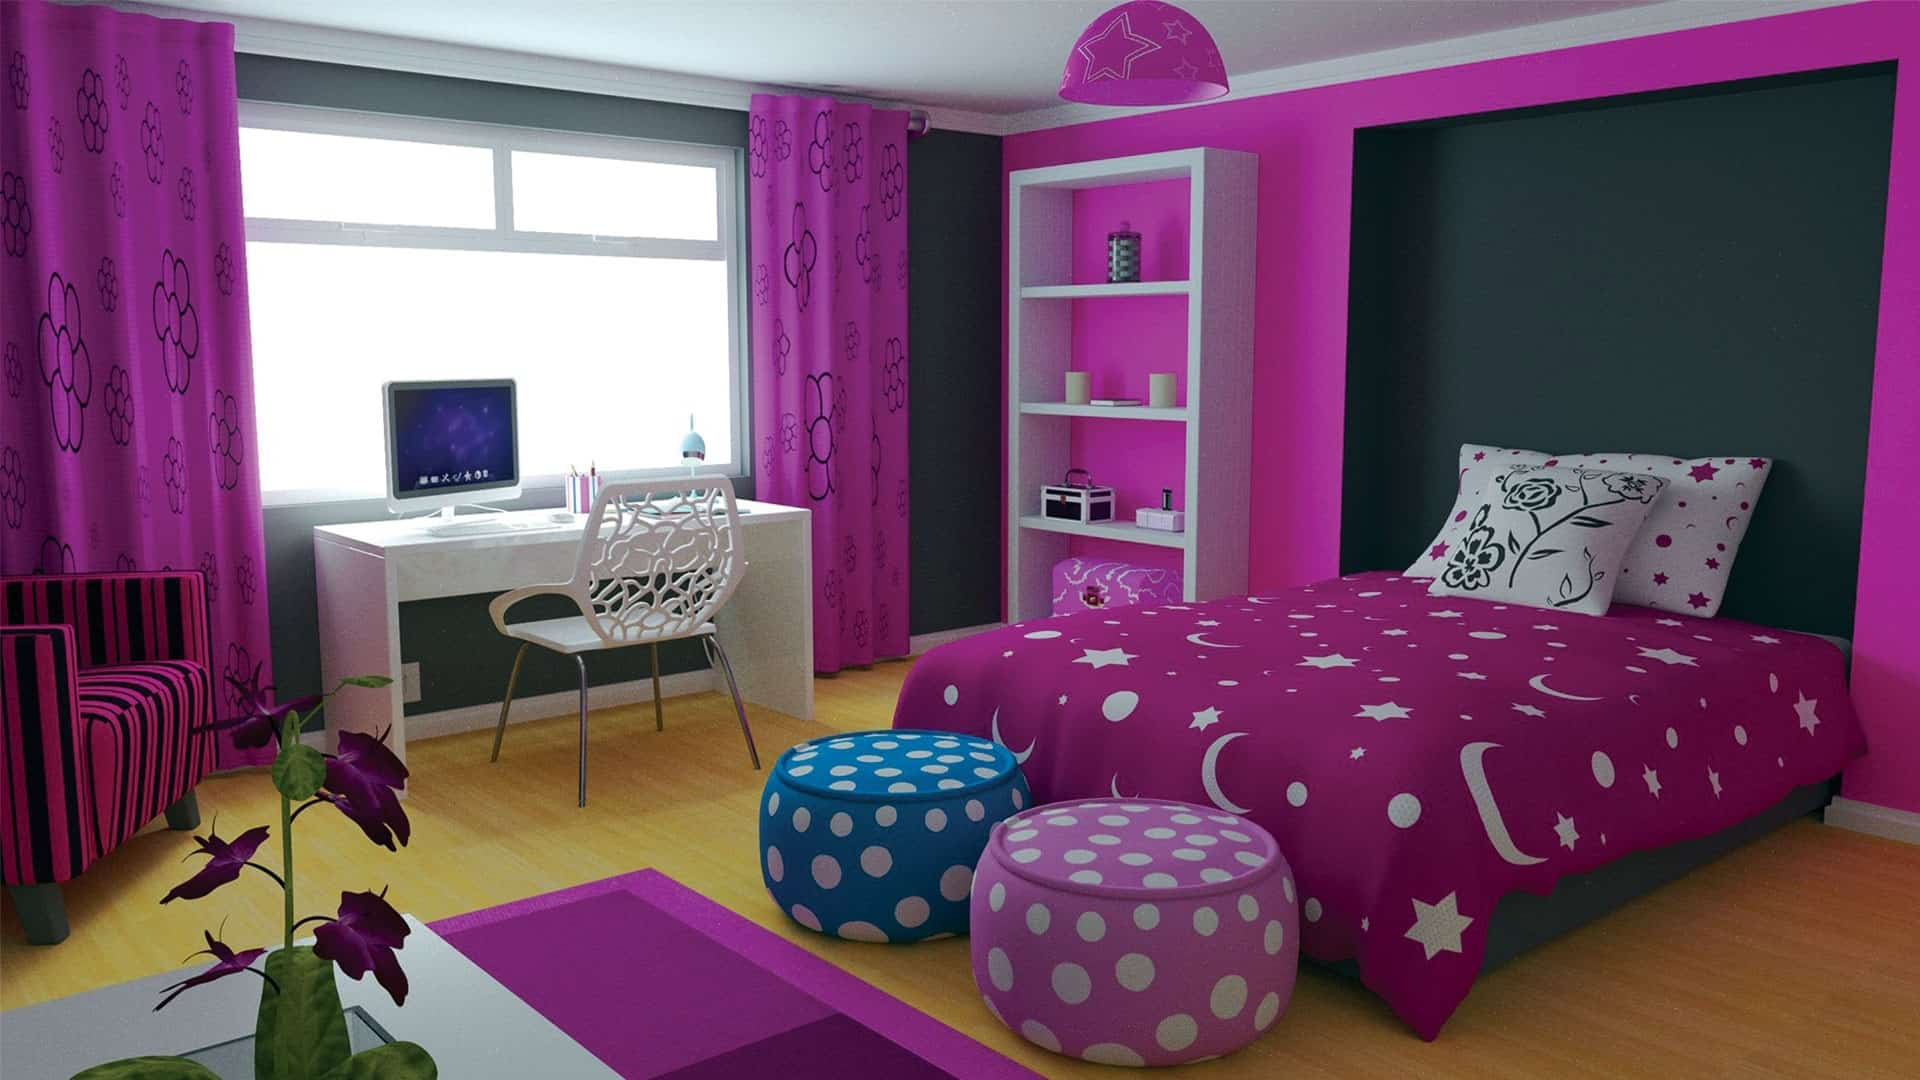 Home decor trends 2017 purple teen room for Teenage girl room decorating ideas